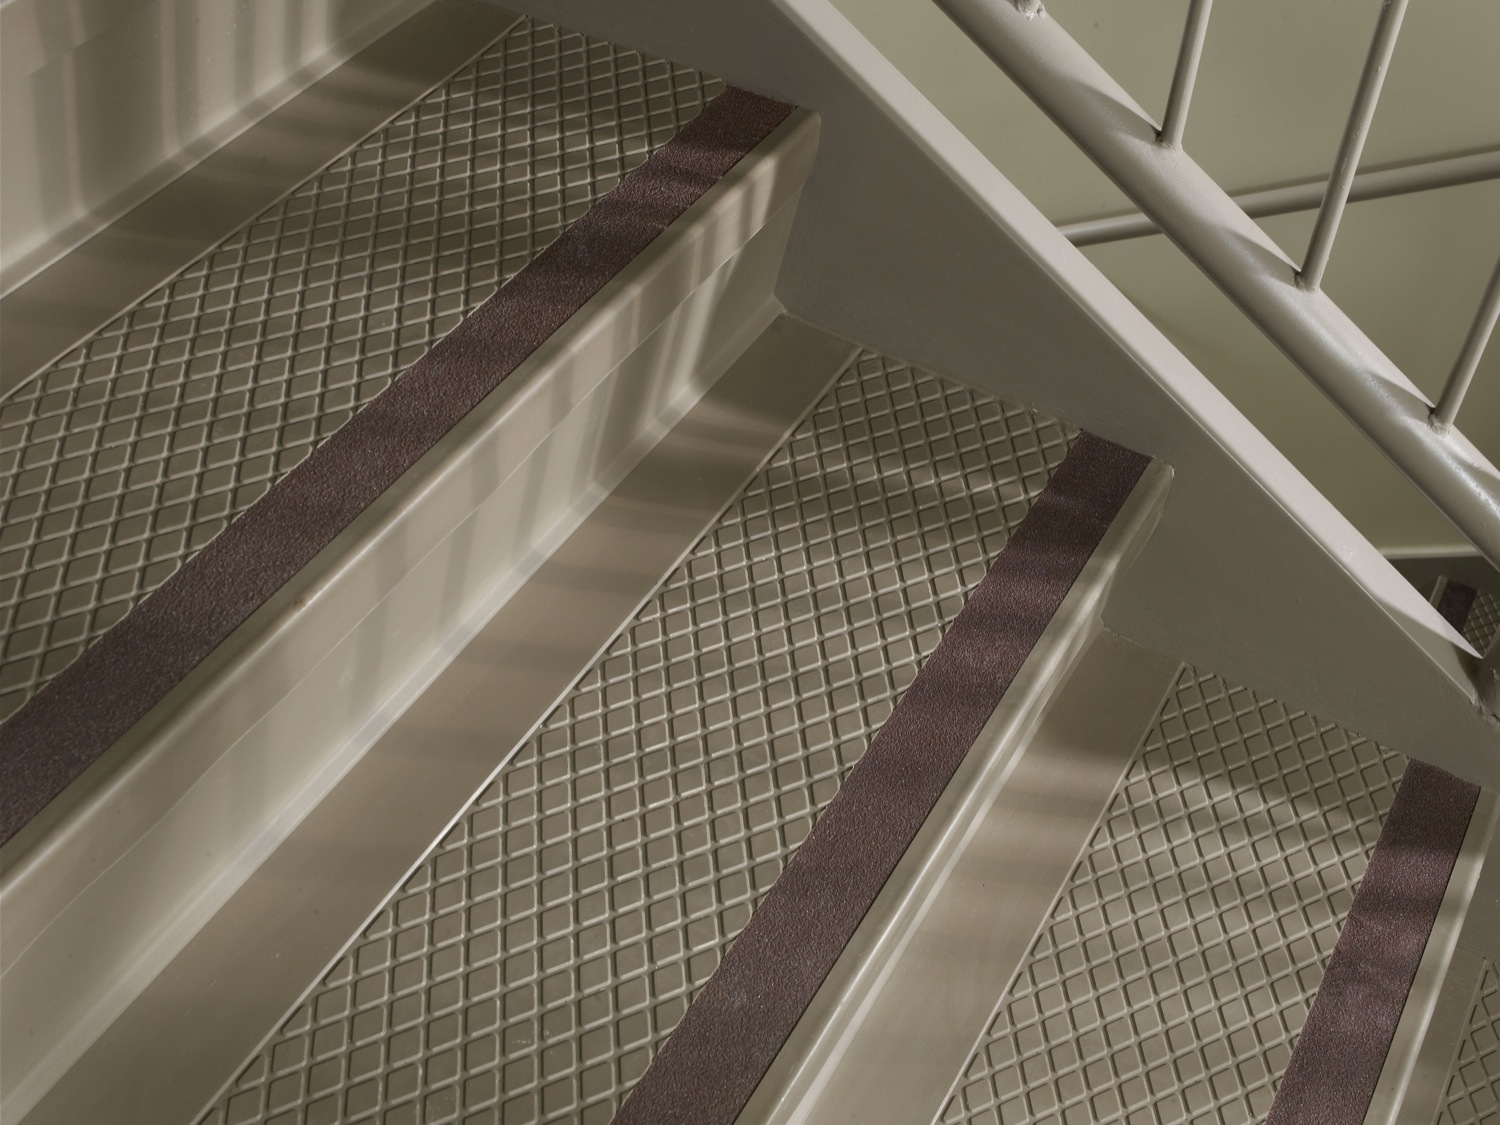 Flooring Pretty Stair Treads Carpet For Stair Decoration Idea Intended For Stair Tread Carpet Covers (#7 of 20)